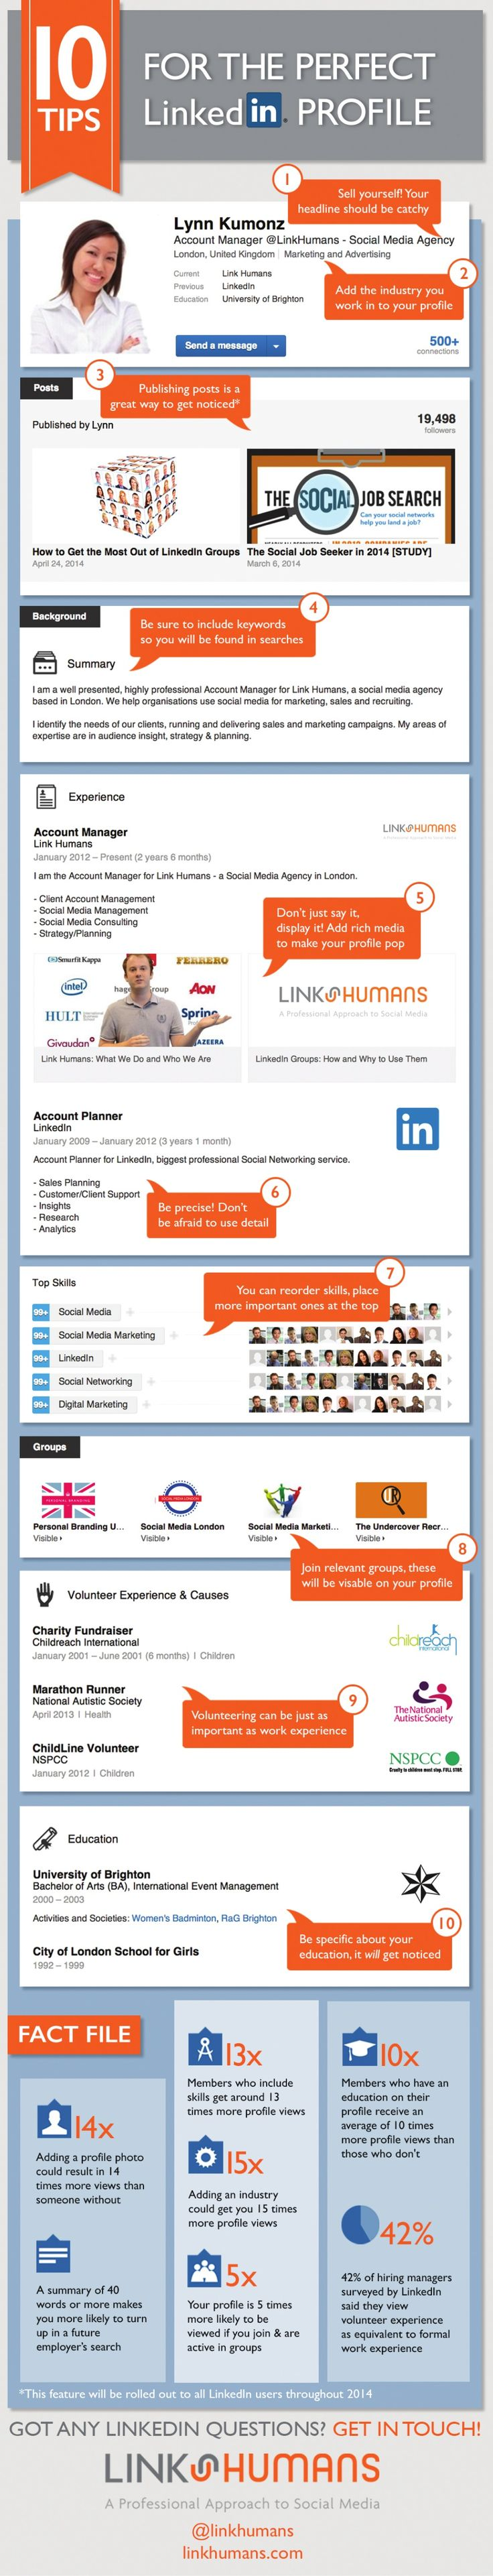 creating A Killer #LinkedIn Profile: Tips From Link Humans #INFOGRAPHIC #socialmedia